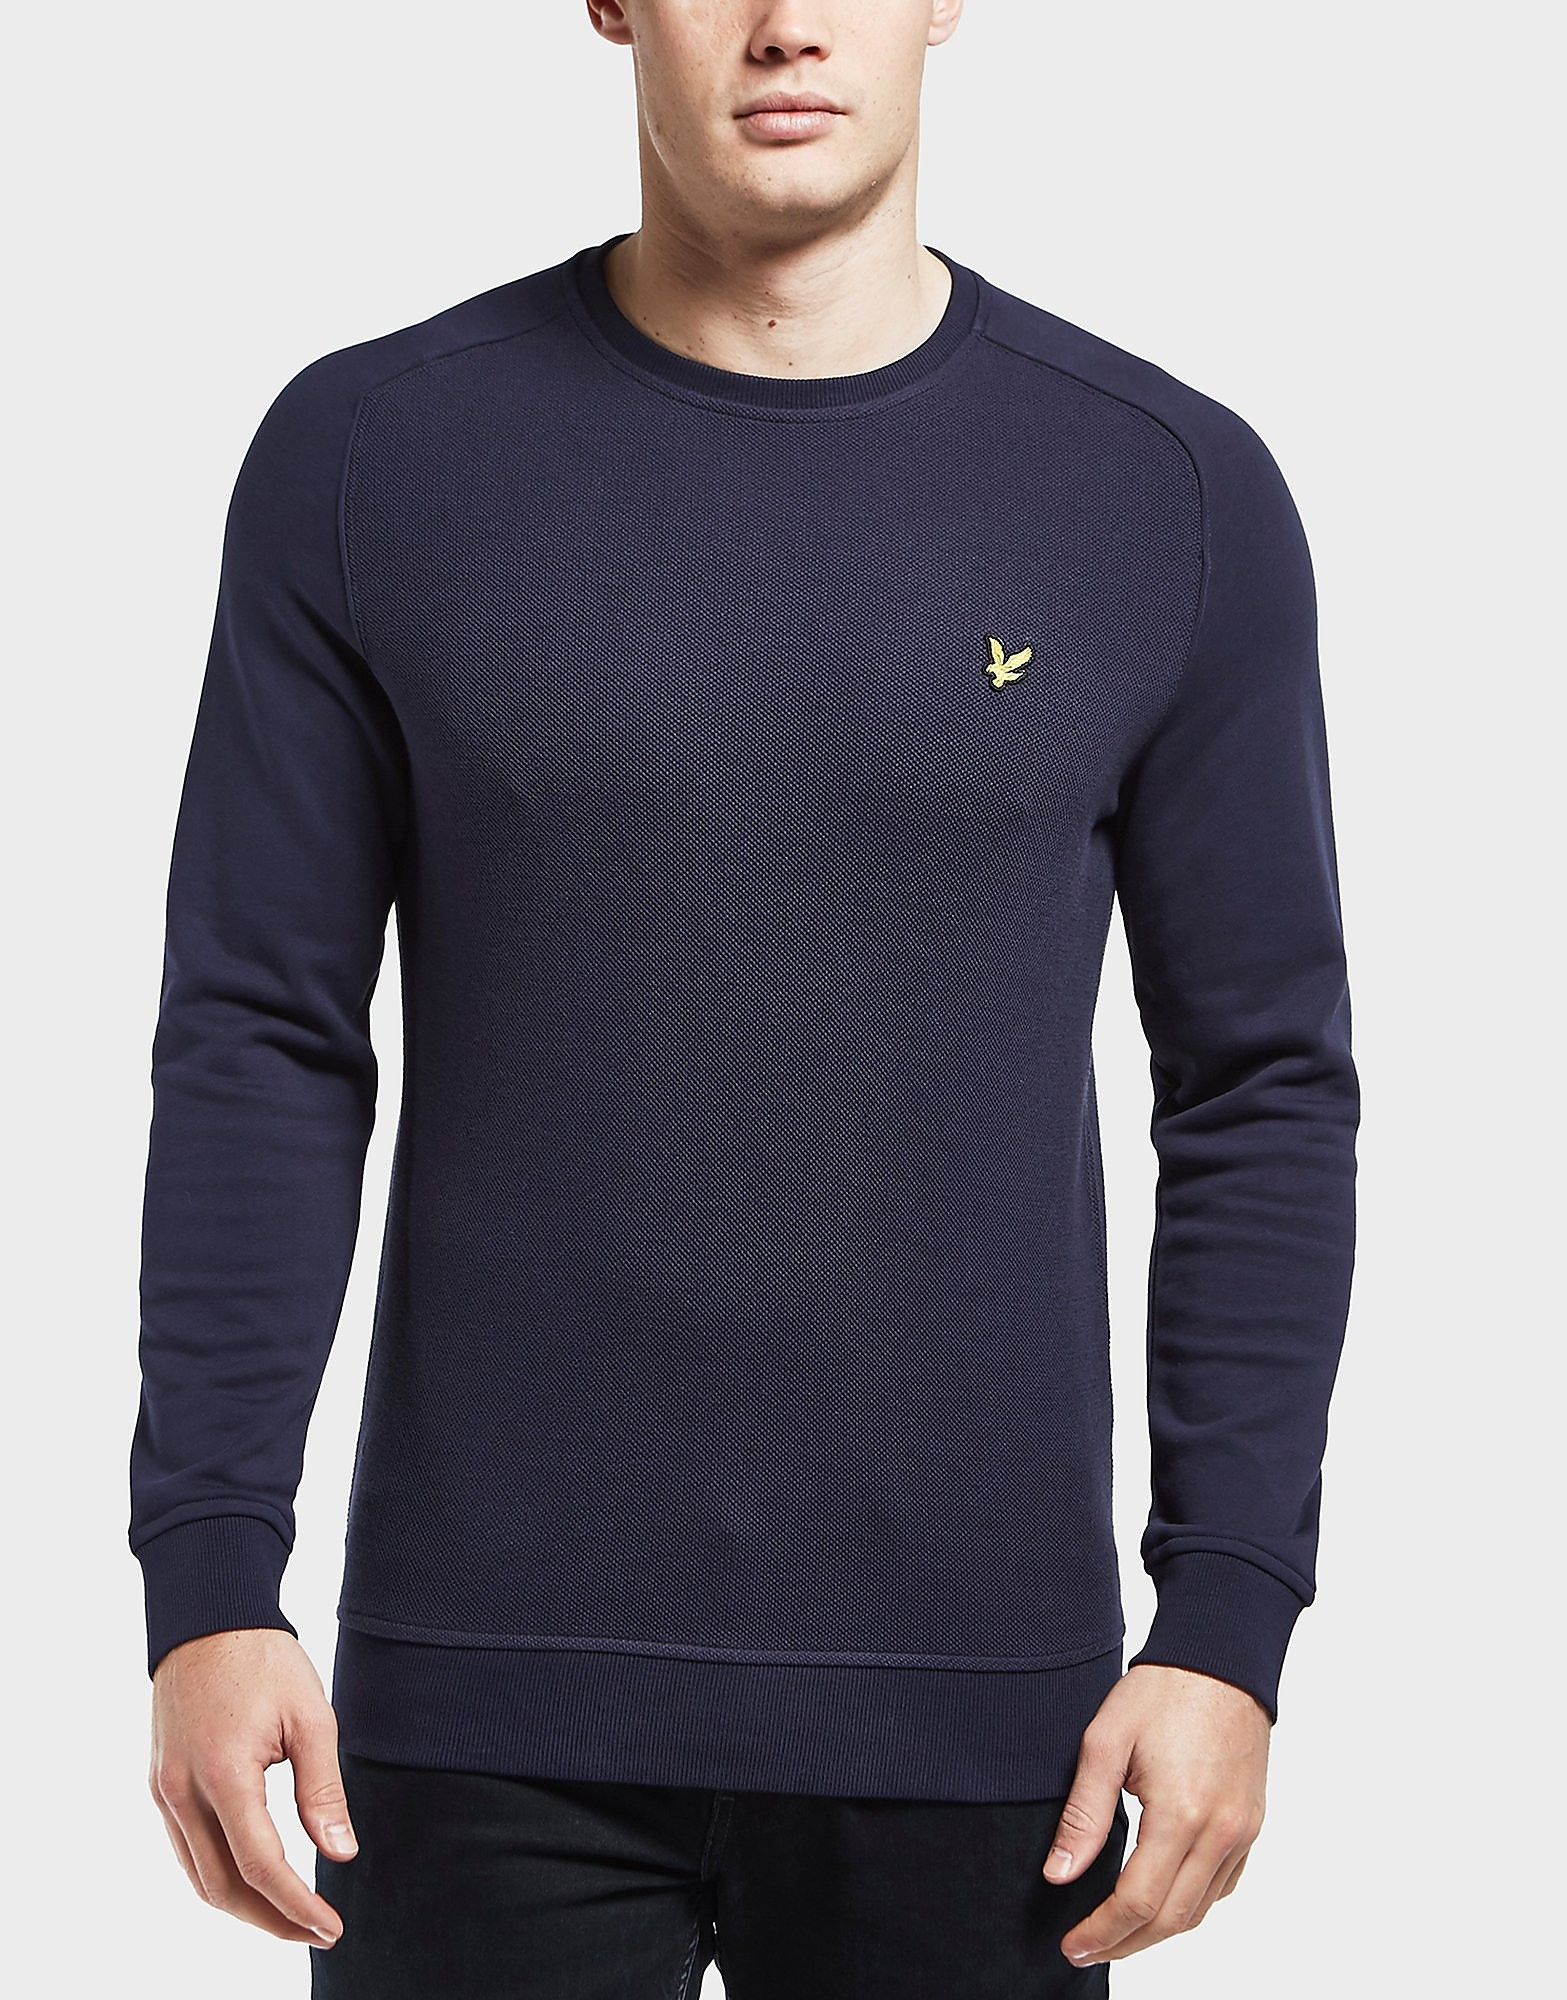 Lyle & Scott Honeycomb Sweatshirt